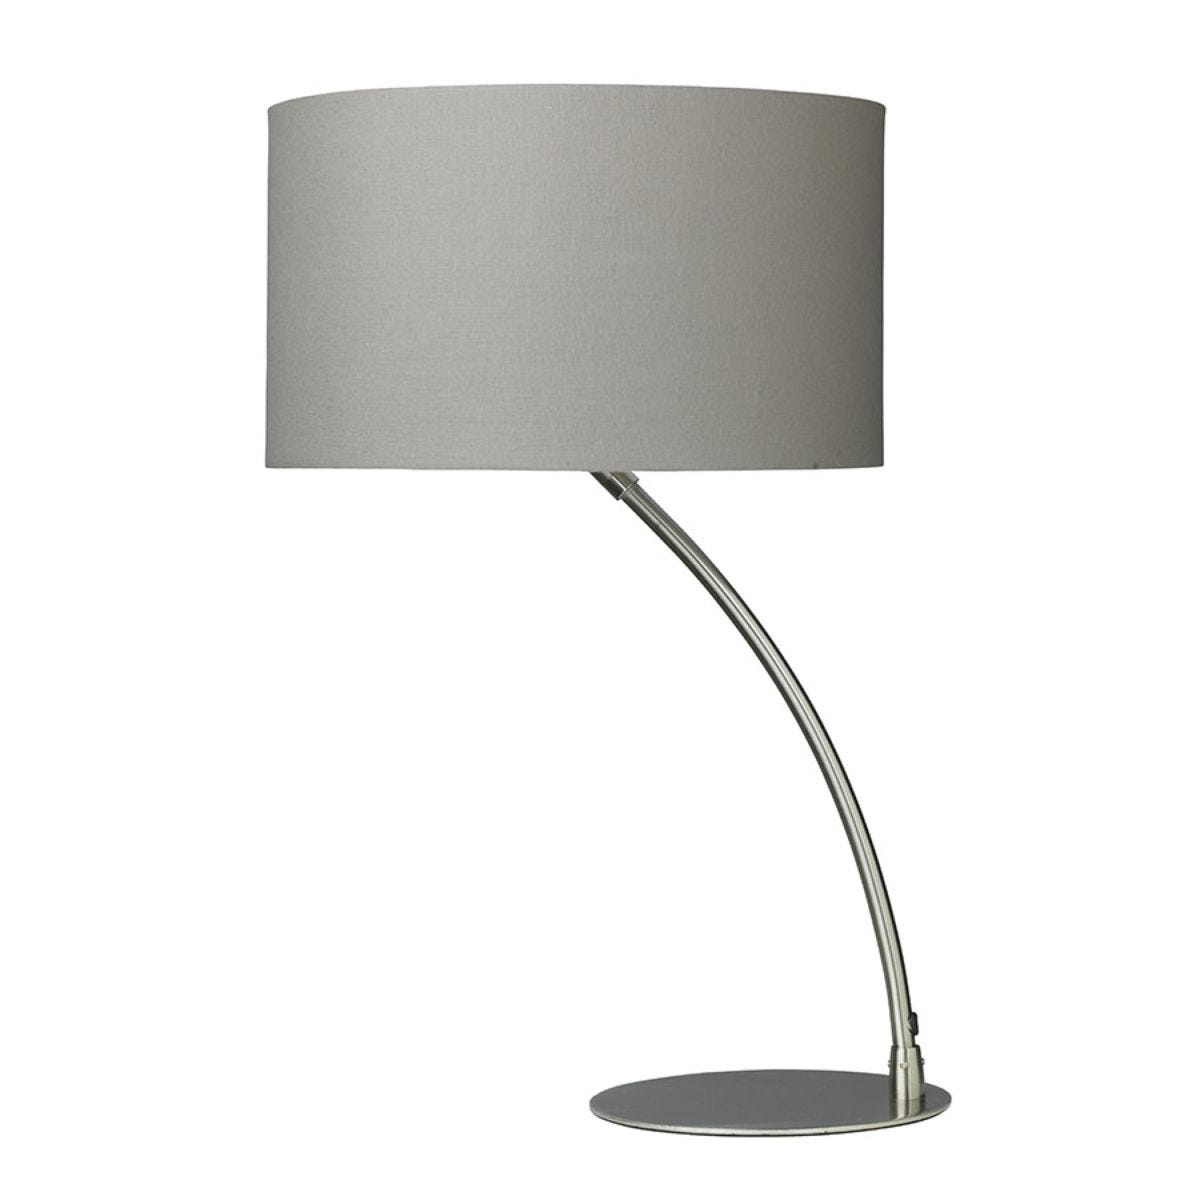 Village At Home Curve Table Lamp - Grey